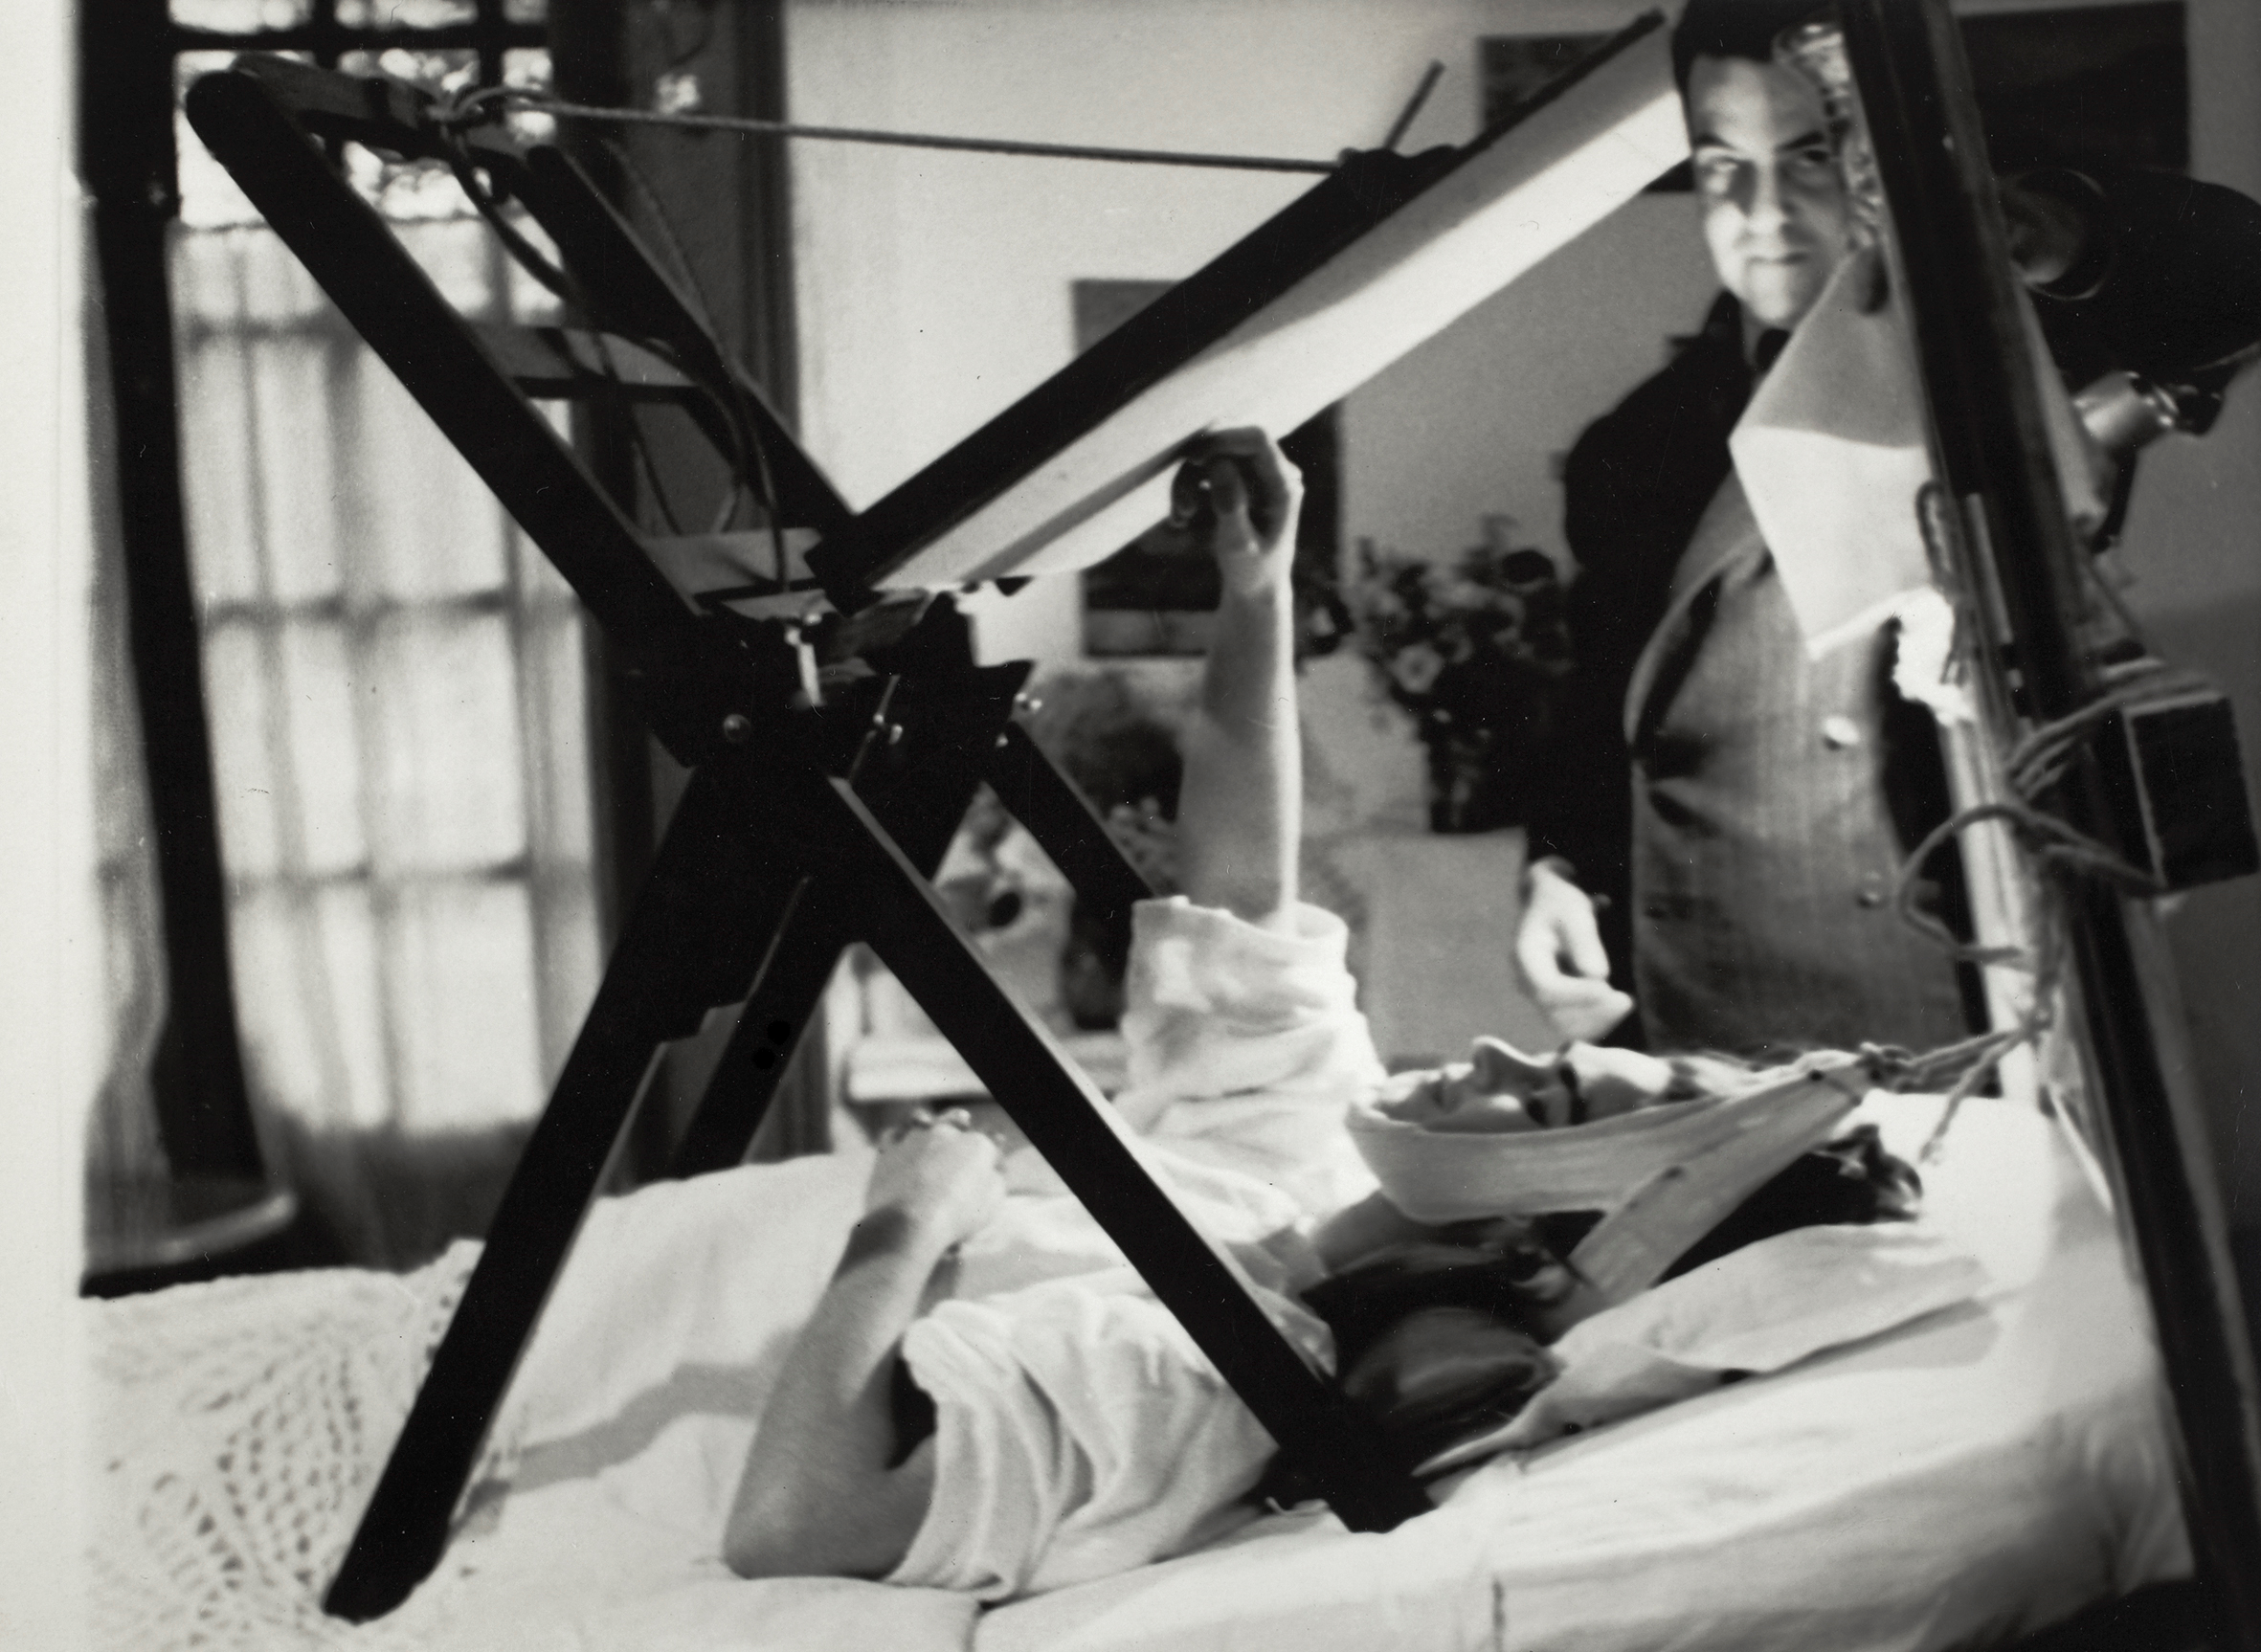 Frida painting in her bed, Anonymous, 1940